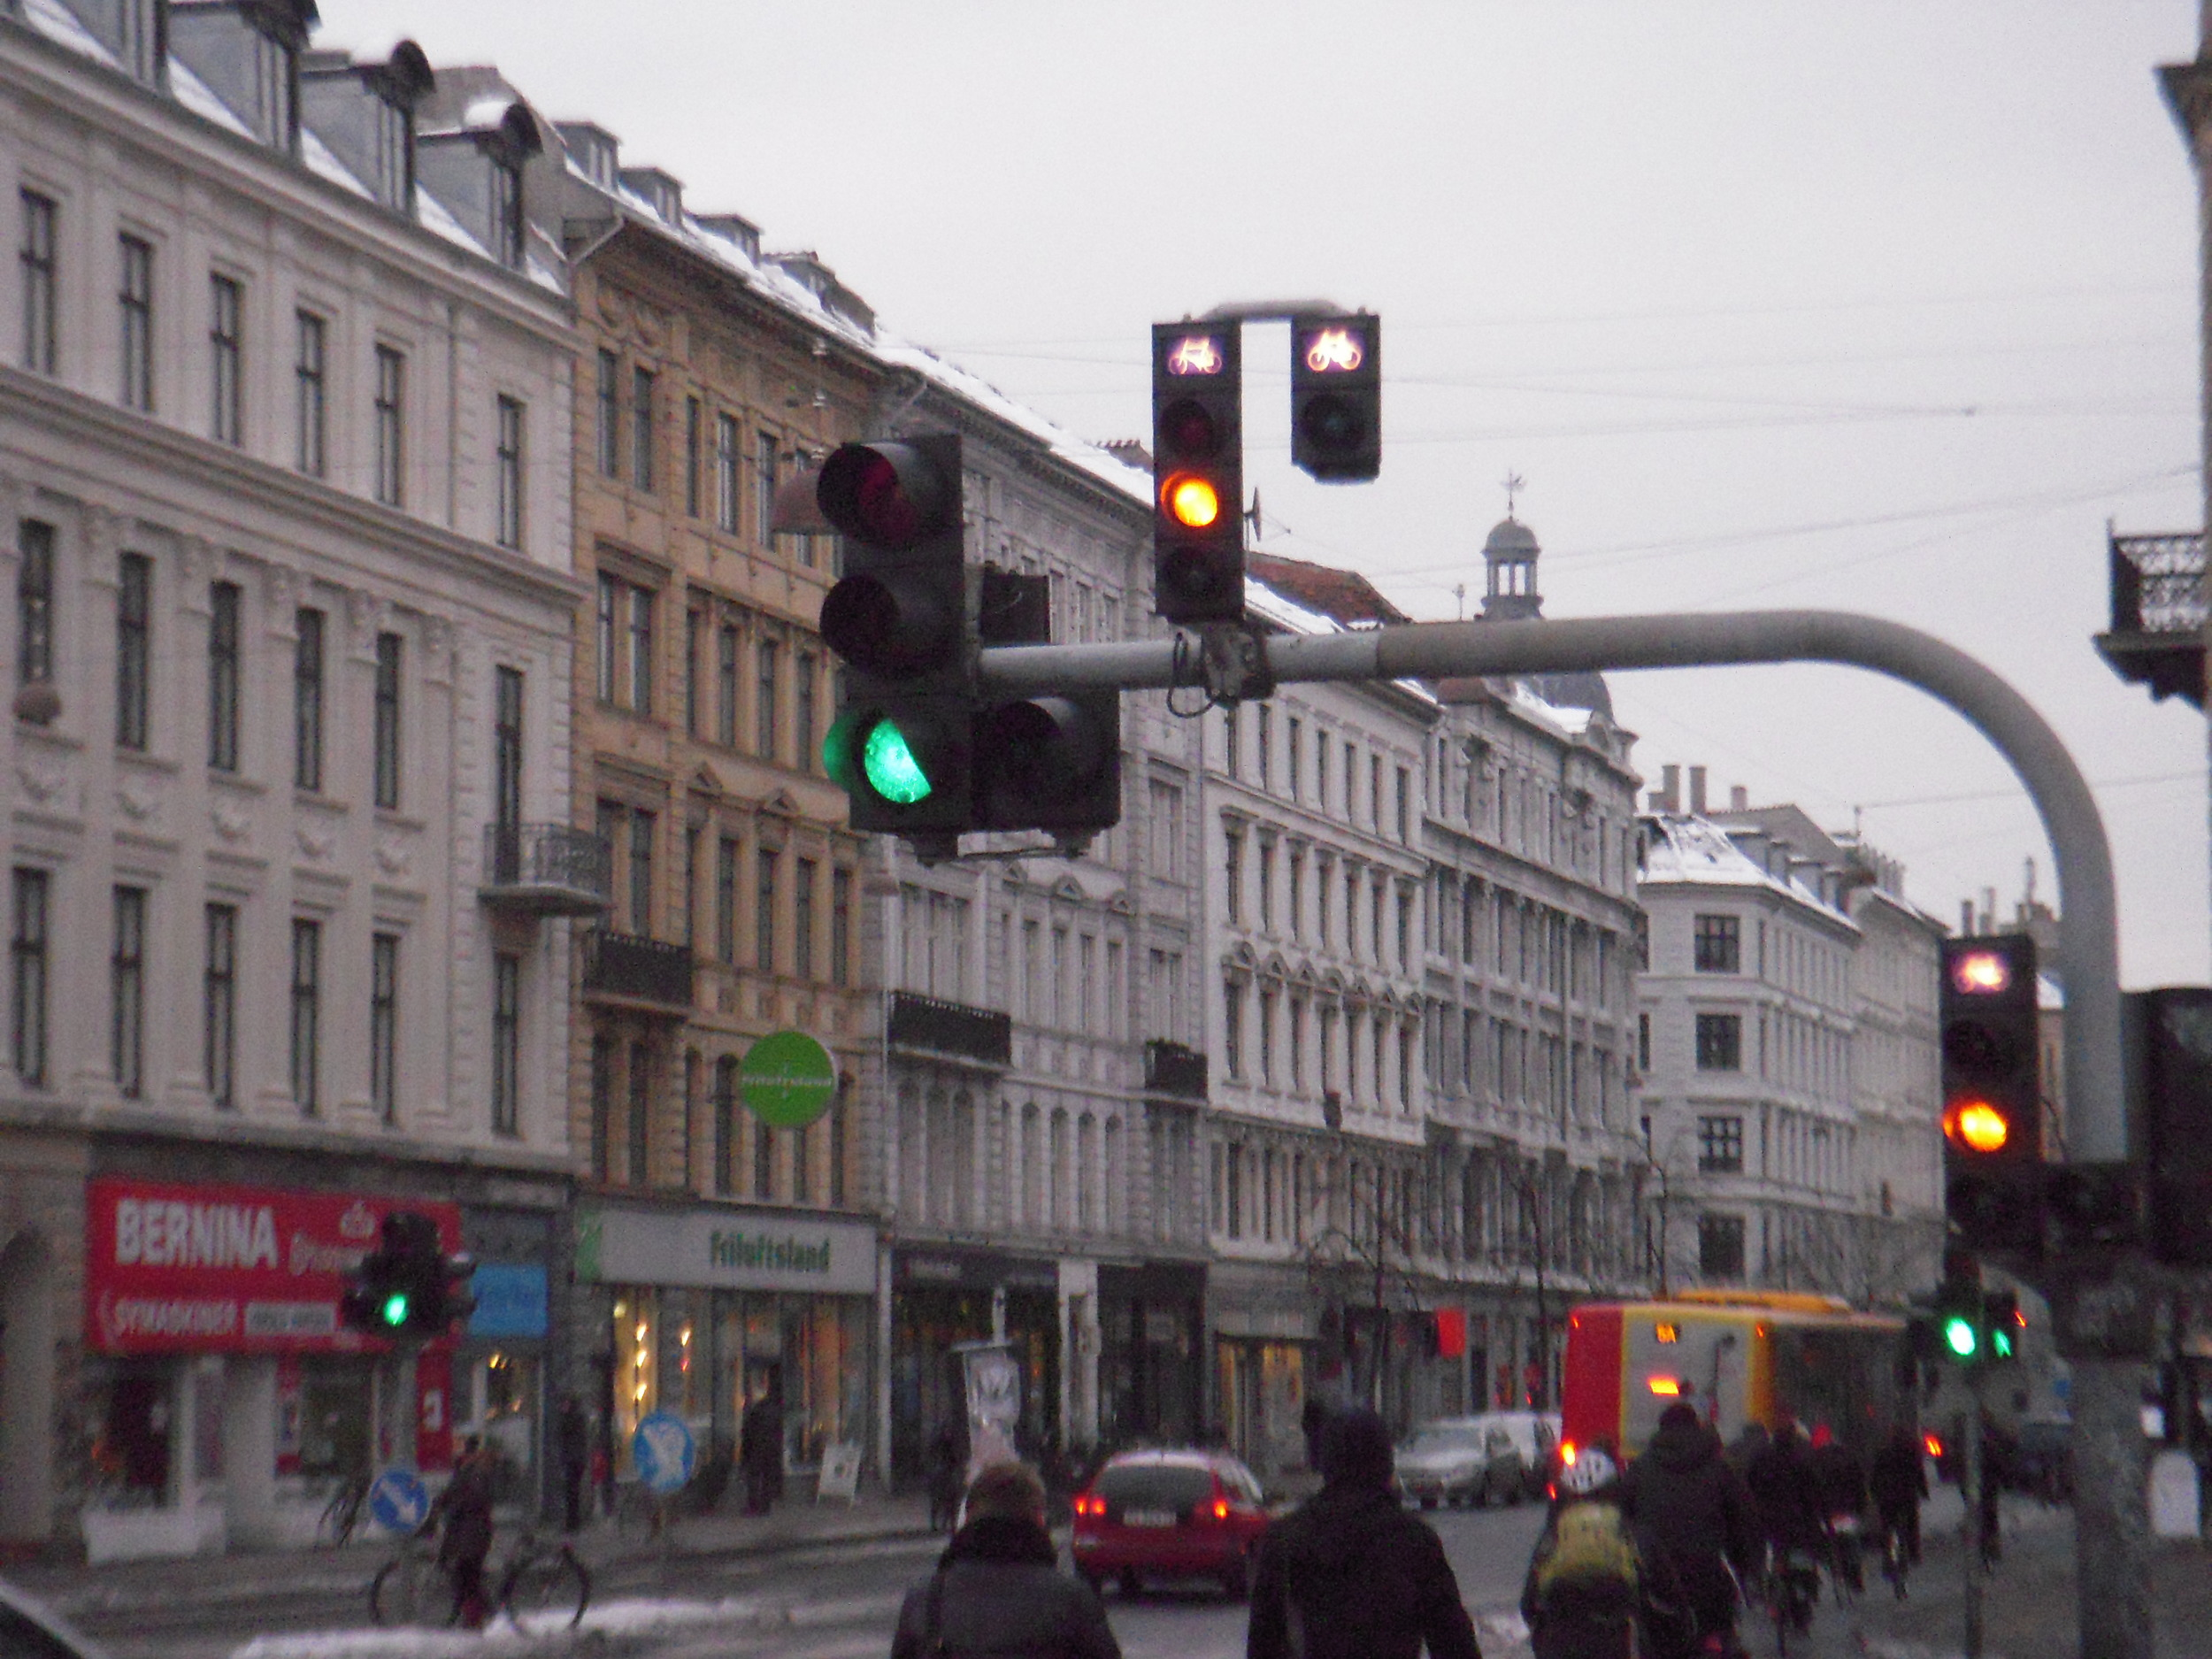 Traffic Lights with Bicycle Prioritization